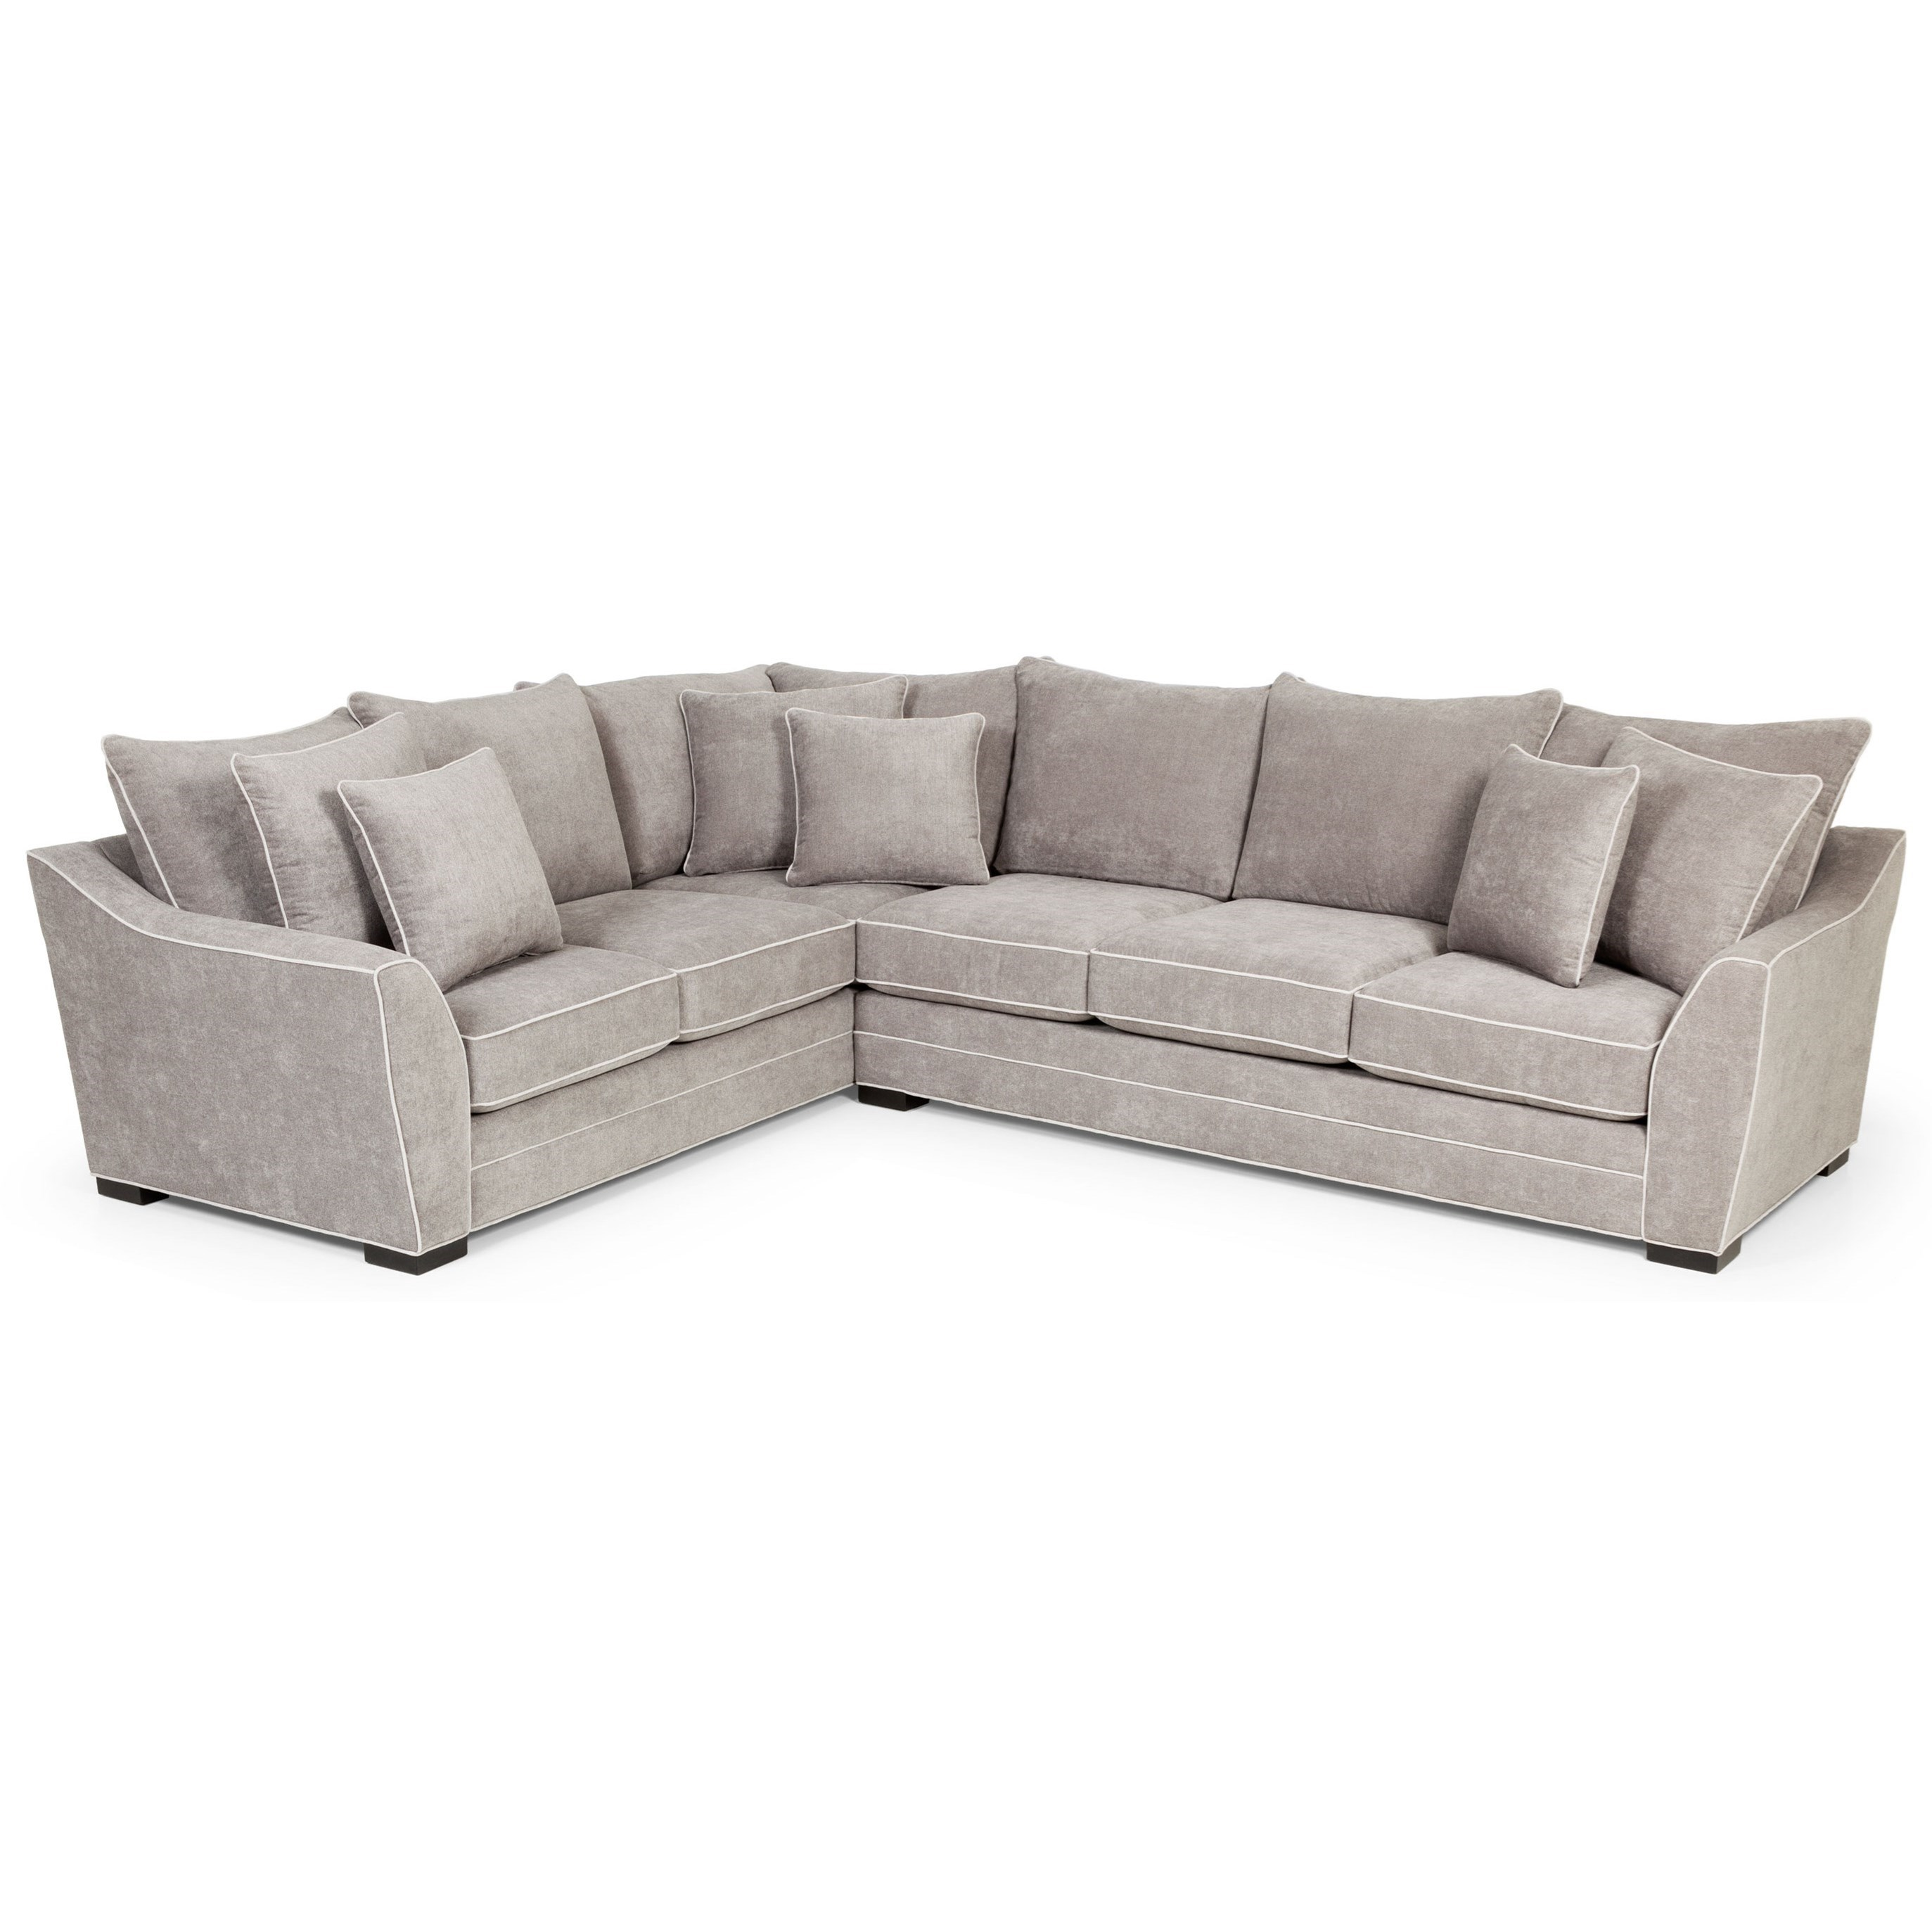 378 2-Piece Sectional by Sunset Home at Sadler's Home Furnishings